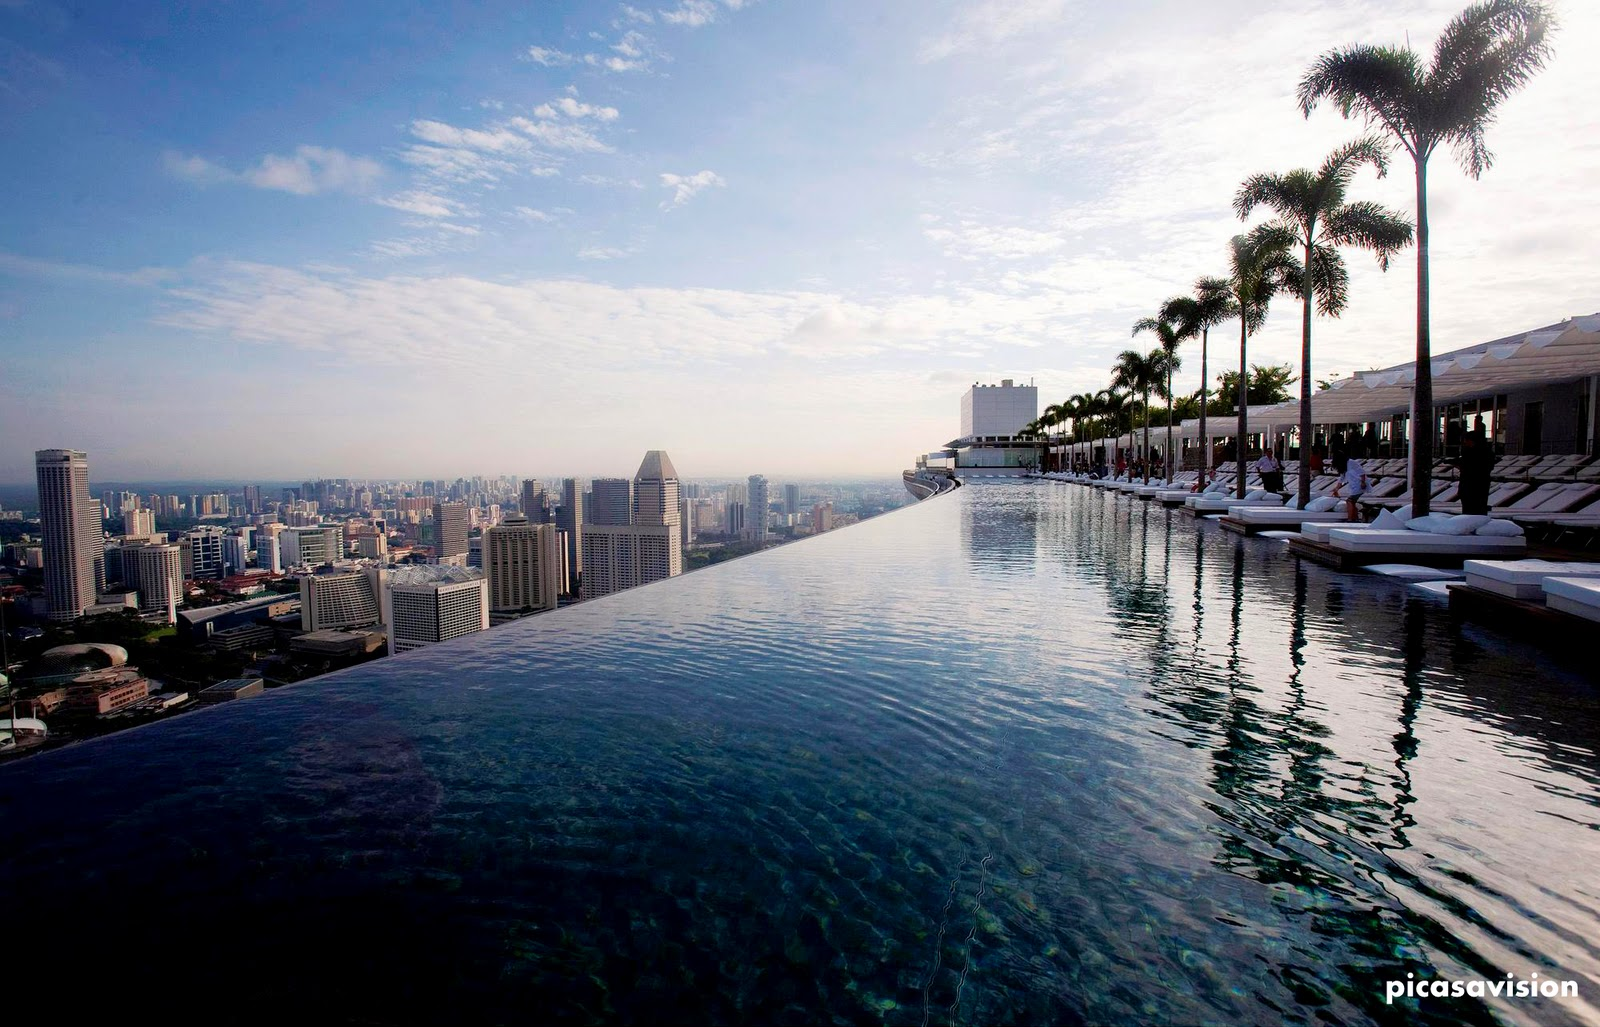 Picasa Vision Swimming Pool On 55th Floor Marina Bay Sands Hotel Singapore